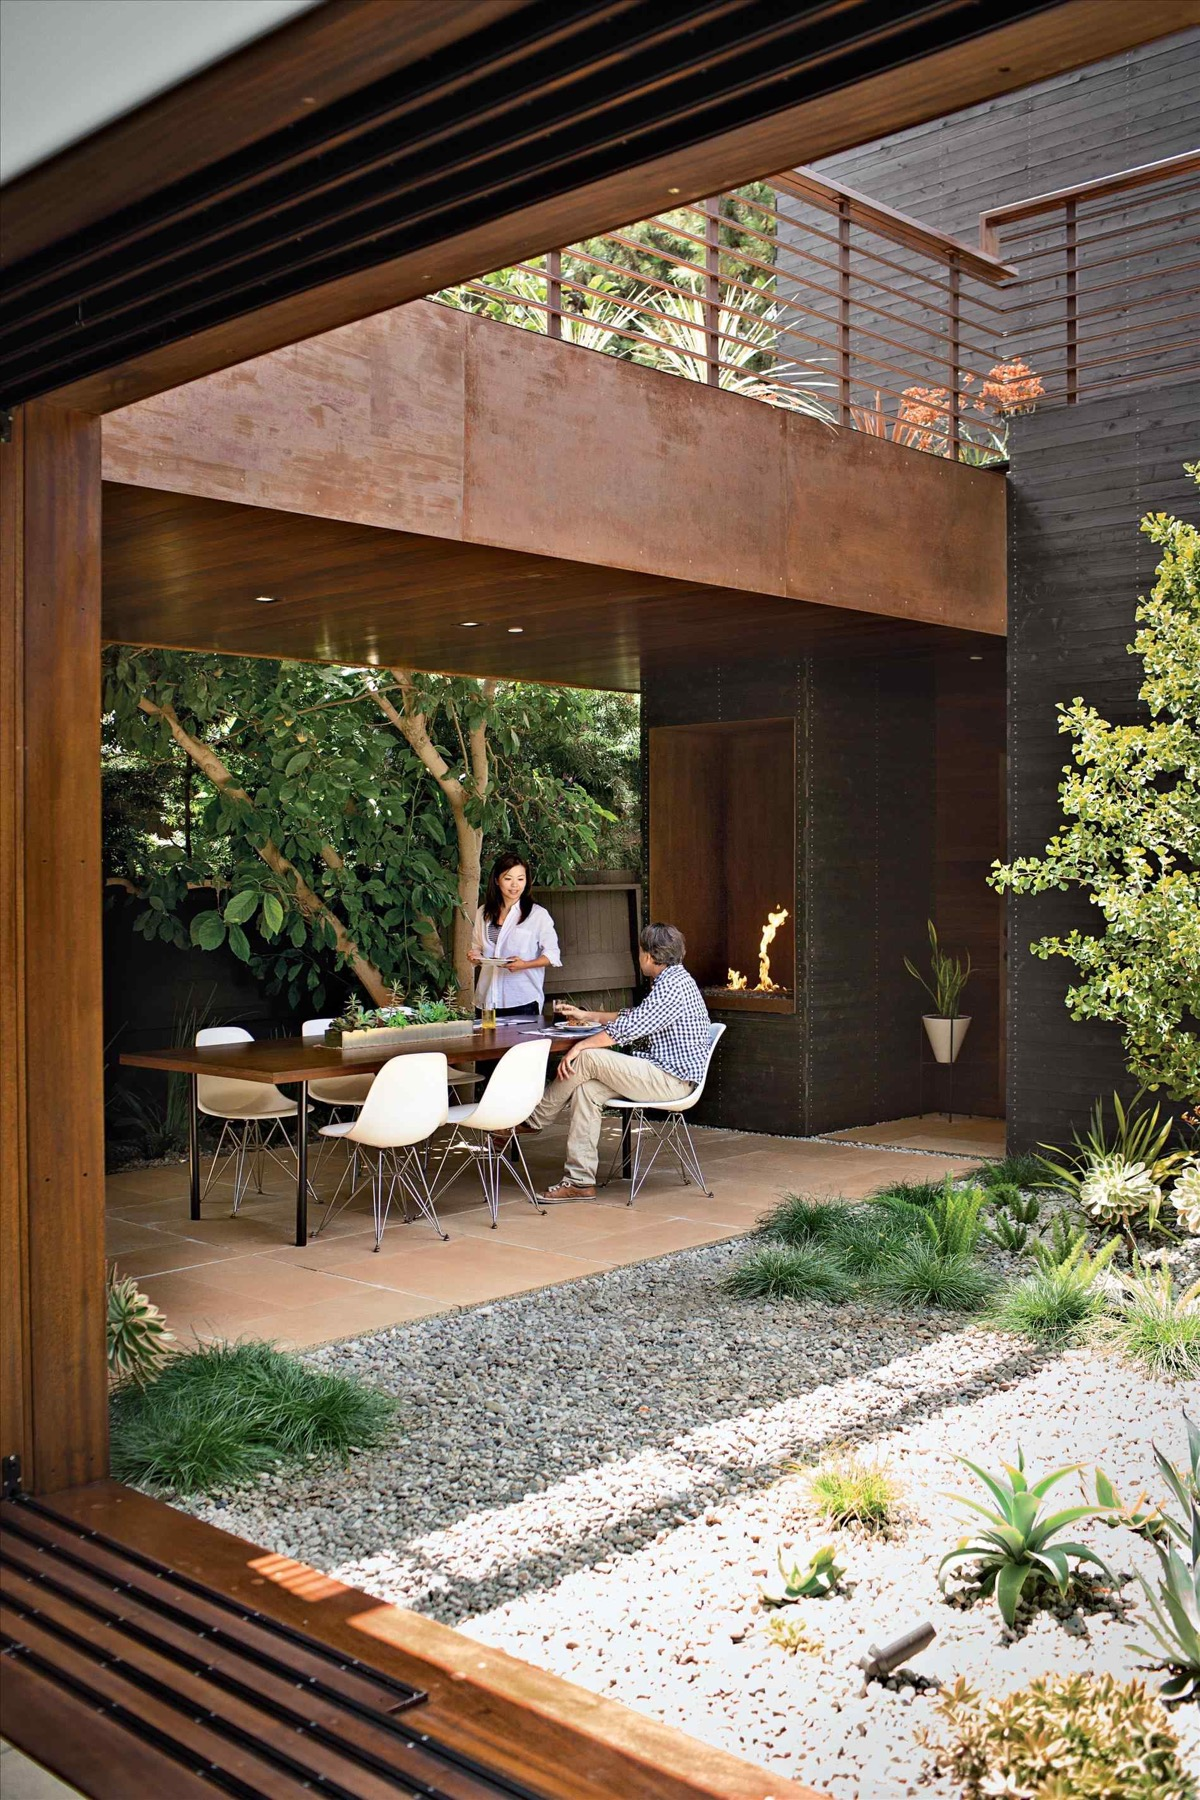 51 Captivating Courtyard Designs That Make Us Go Wow images 24